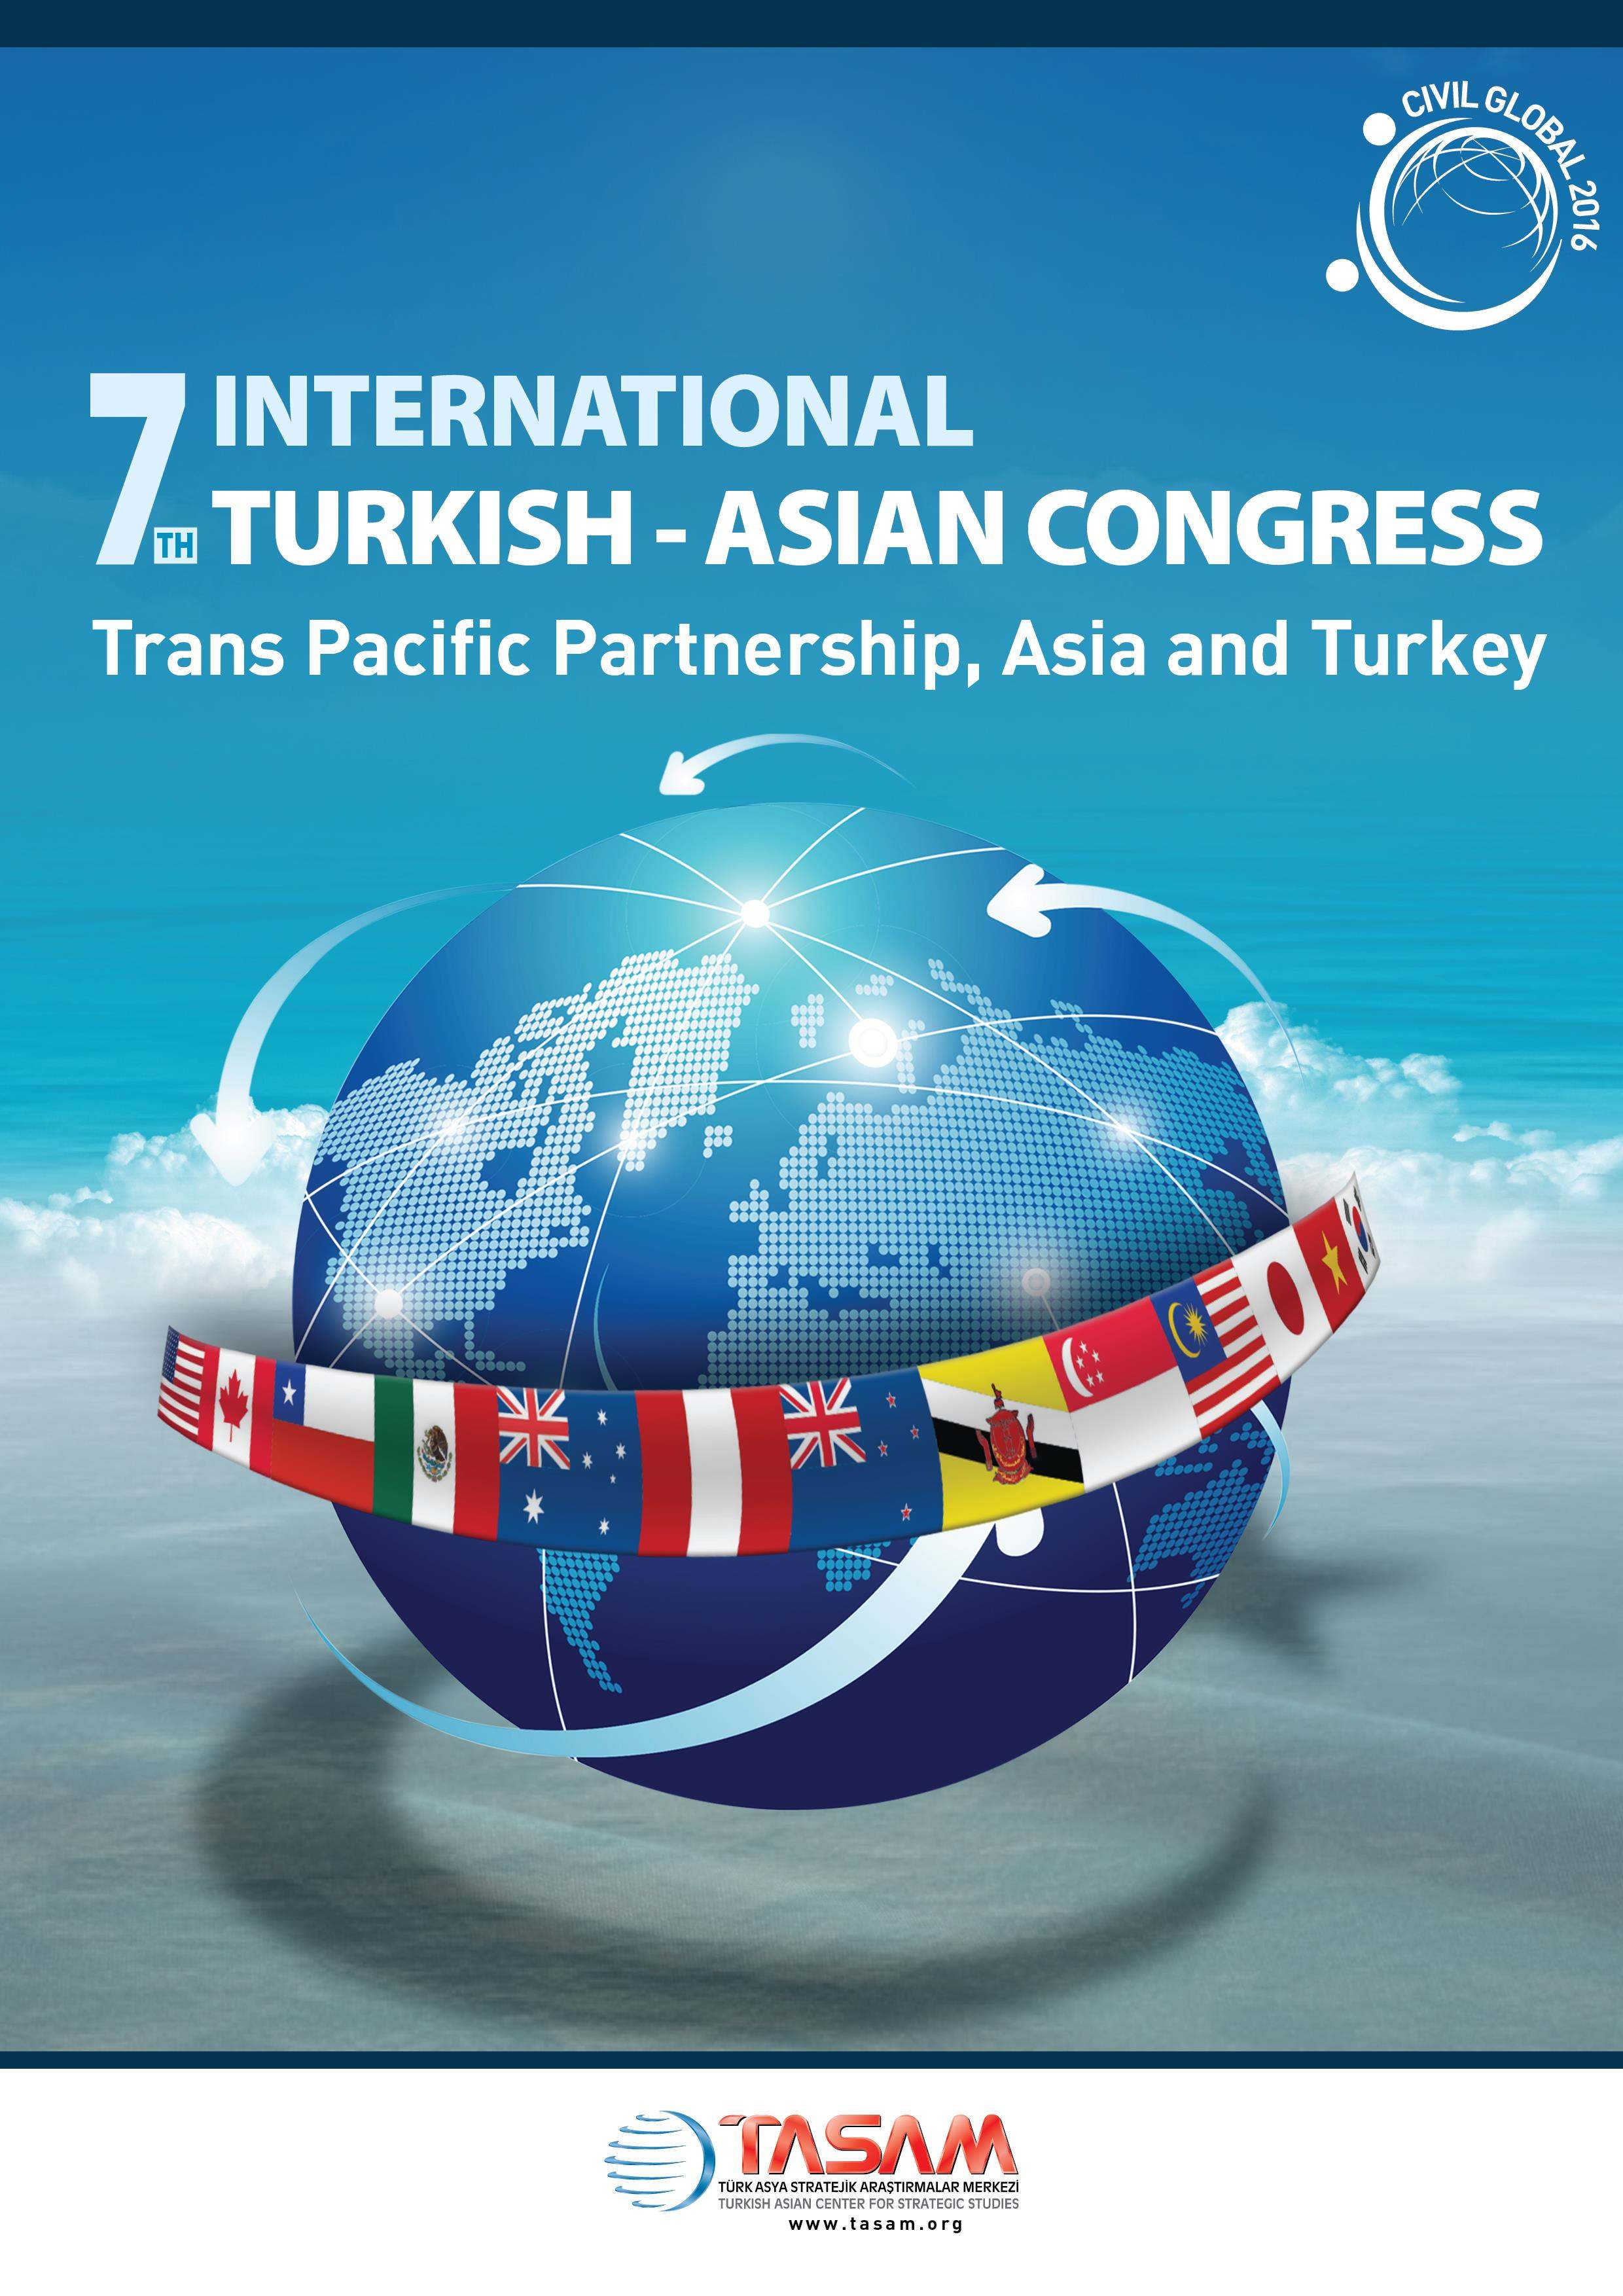 7th International Turkish - Asian Congress